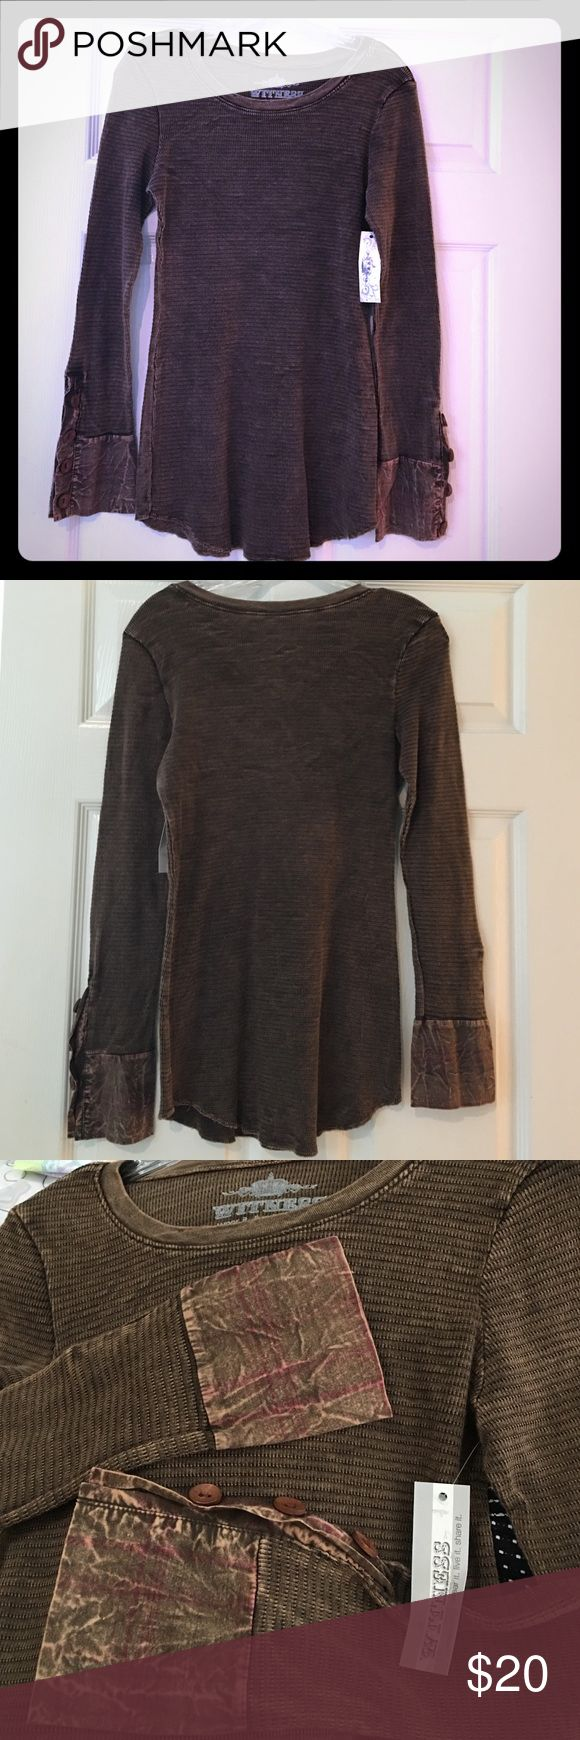 Witness brown long sleeve top Given to me as a gift and I have no prayer of ever fitting into it. The label says large but in no way, shape, or form would I describe this as a large. It's barely even a medium. It's a long length, but super snug across the bust and tummy. There's a lot of stretch.  It's cute and unique, but it's never going to work on me.  Witness brown long sleeve top Witness Tops Tees - Long Sleeve